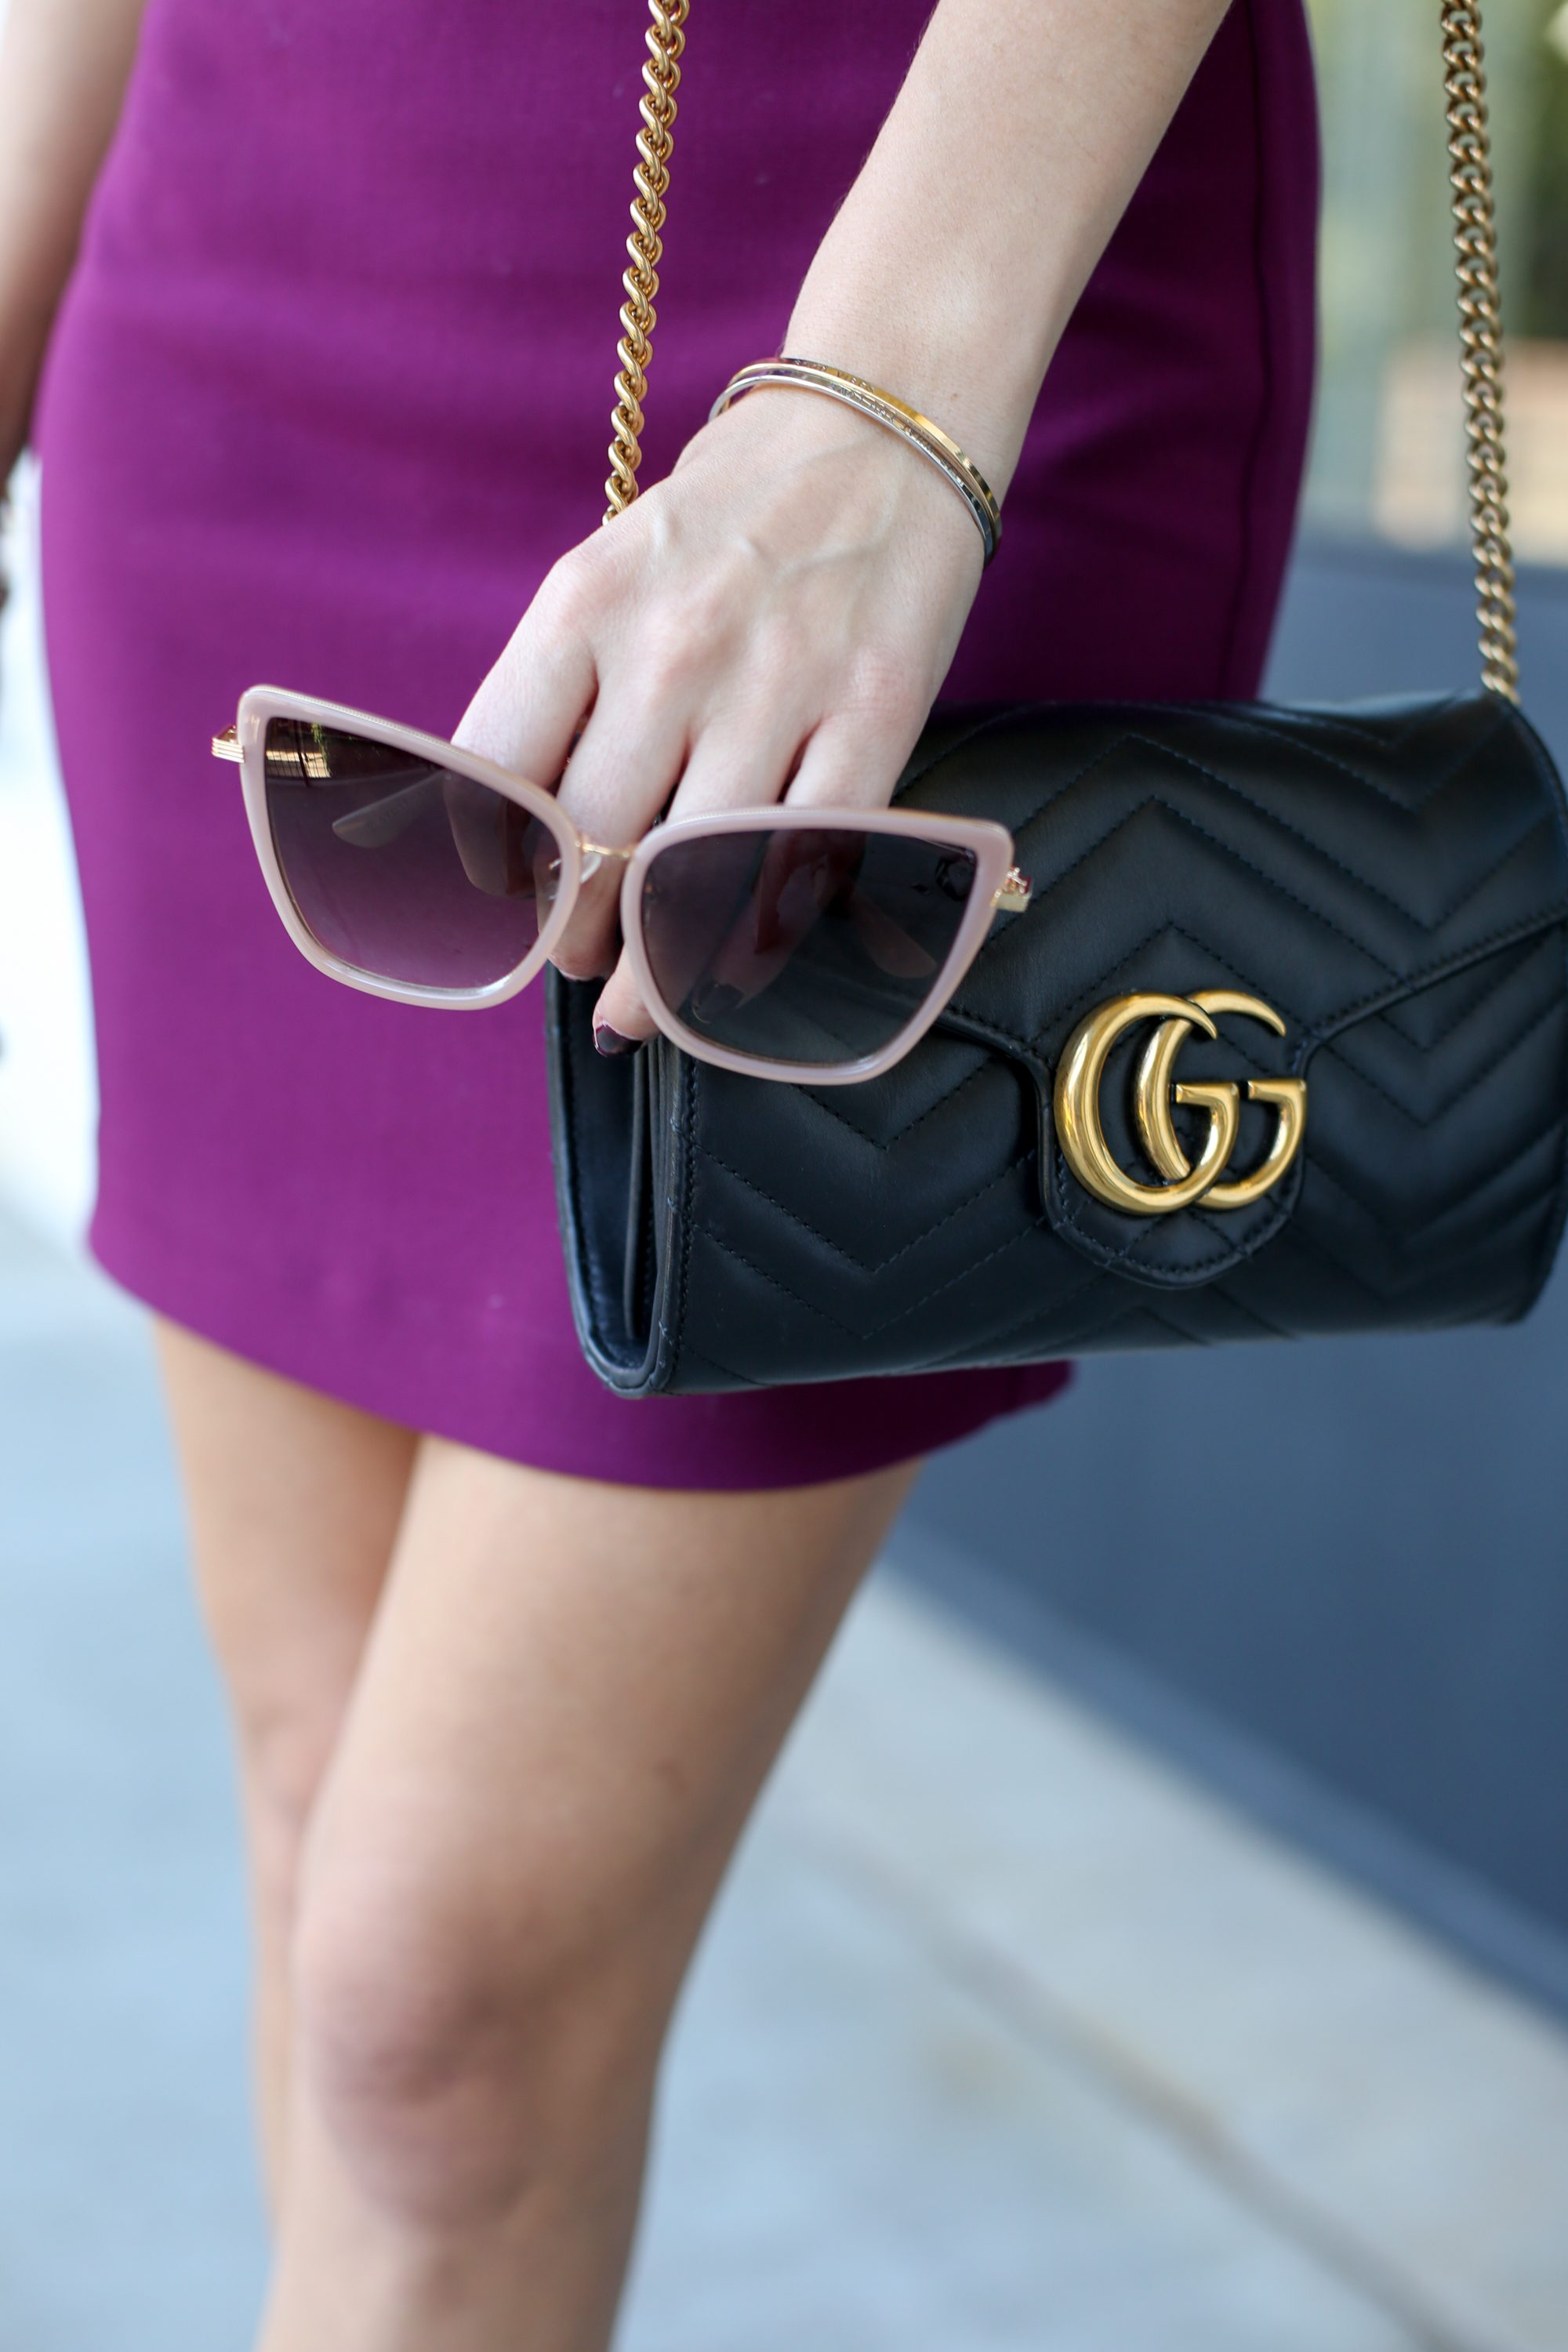 likely nyc manhattan dress, fall style, burgundy, maroon, garnet, wine, pink accents, gg marmont bag